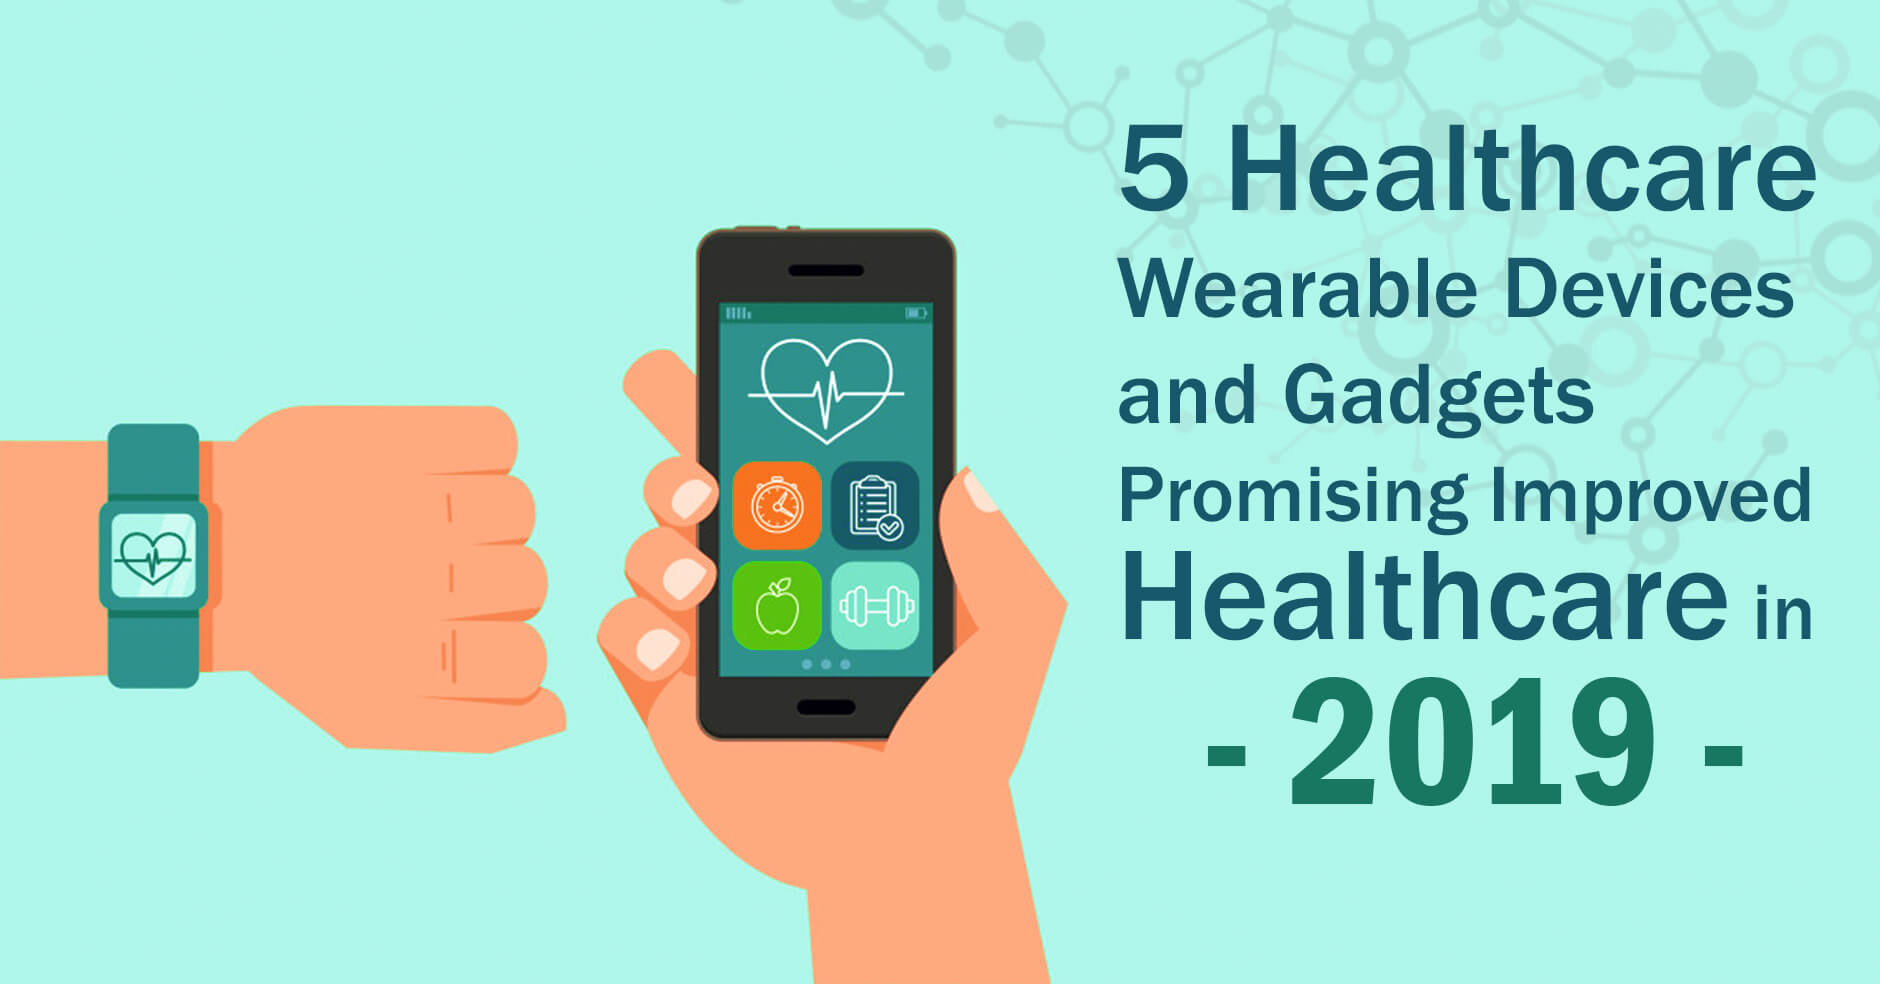 5 Healthcare Wearable Devices and Gadgets Promising Improved Healthcare in 2019